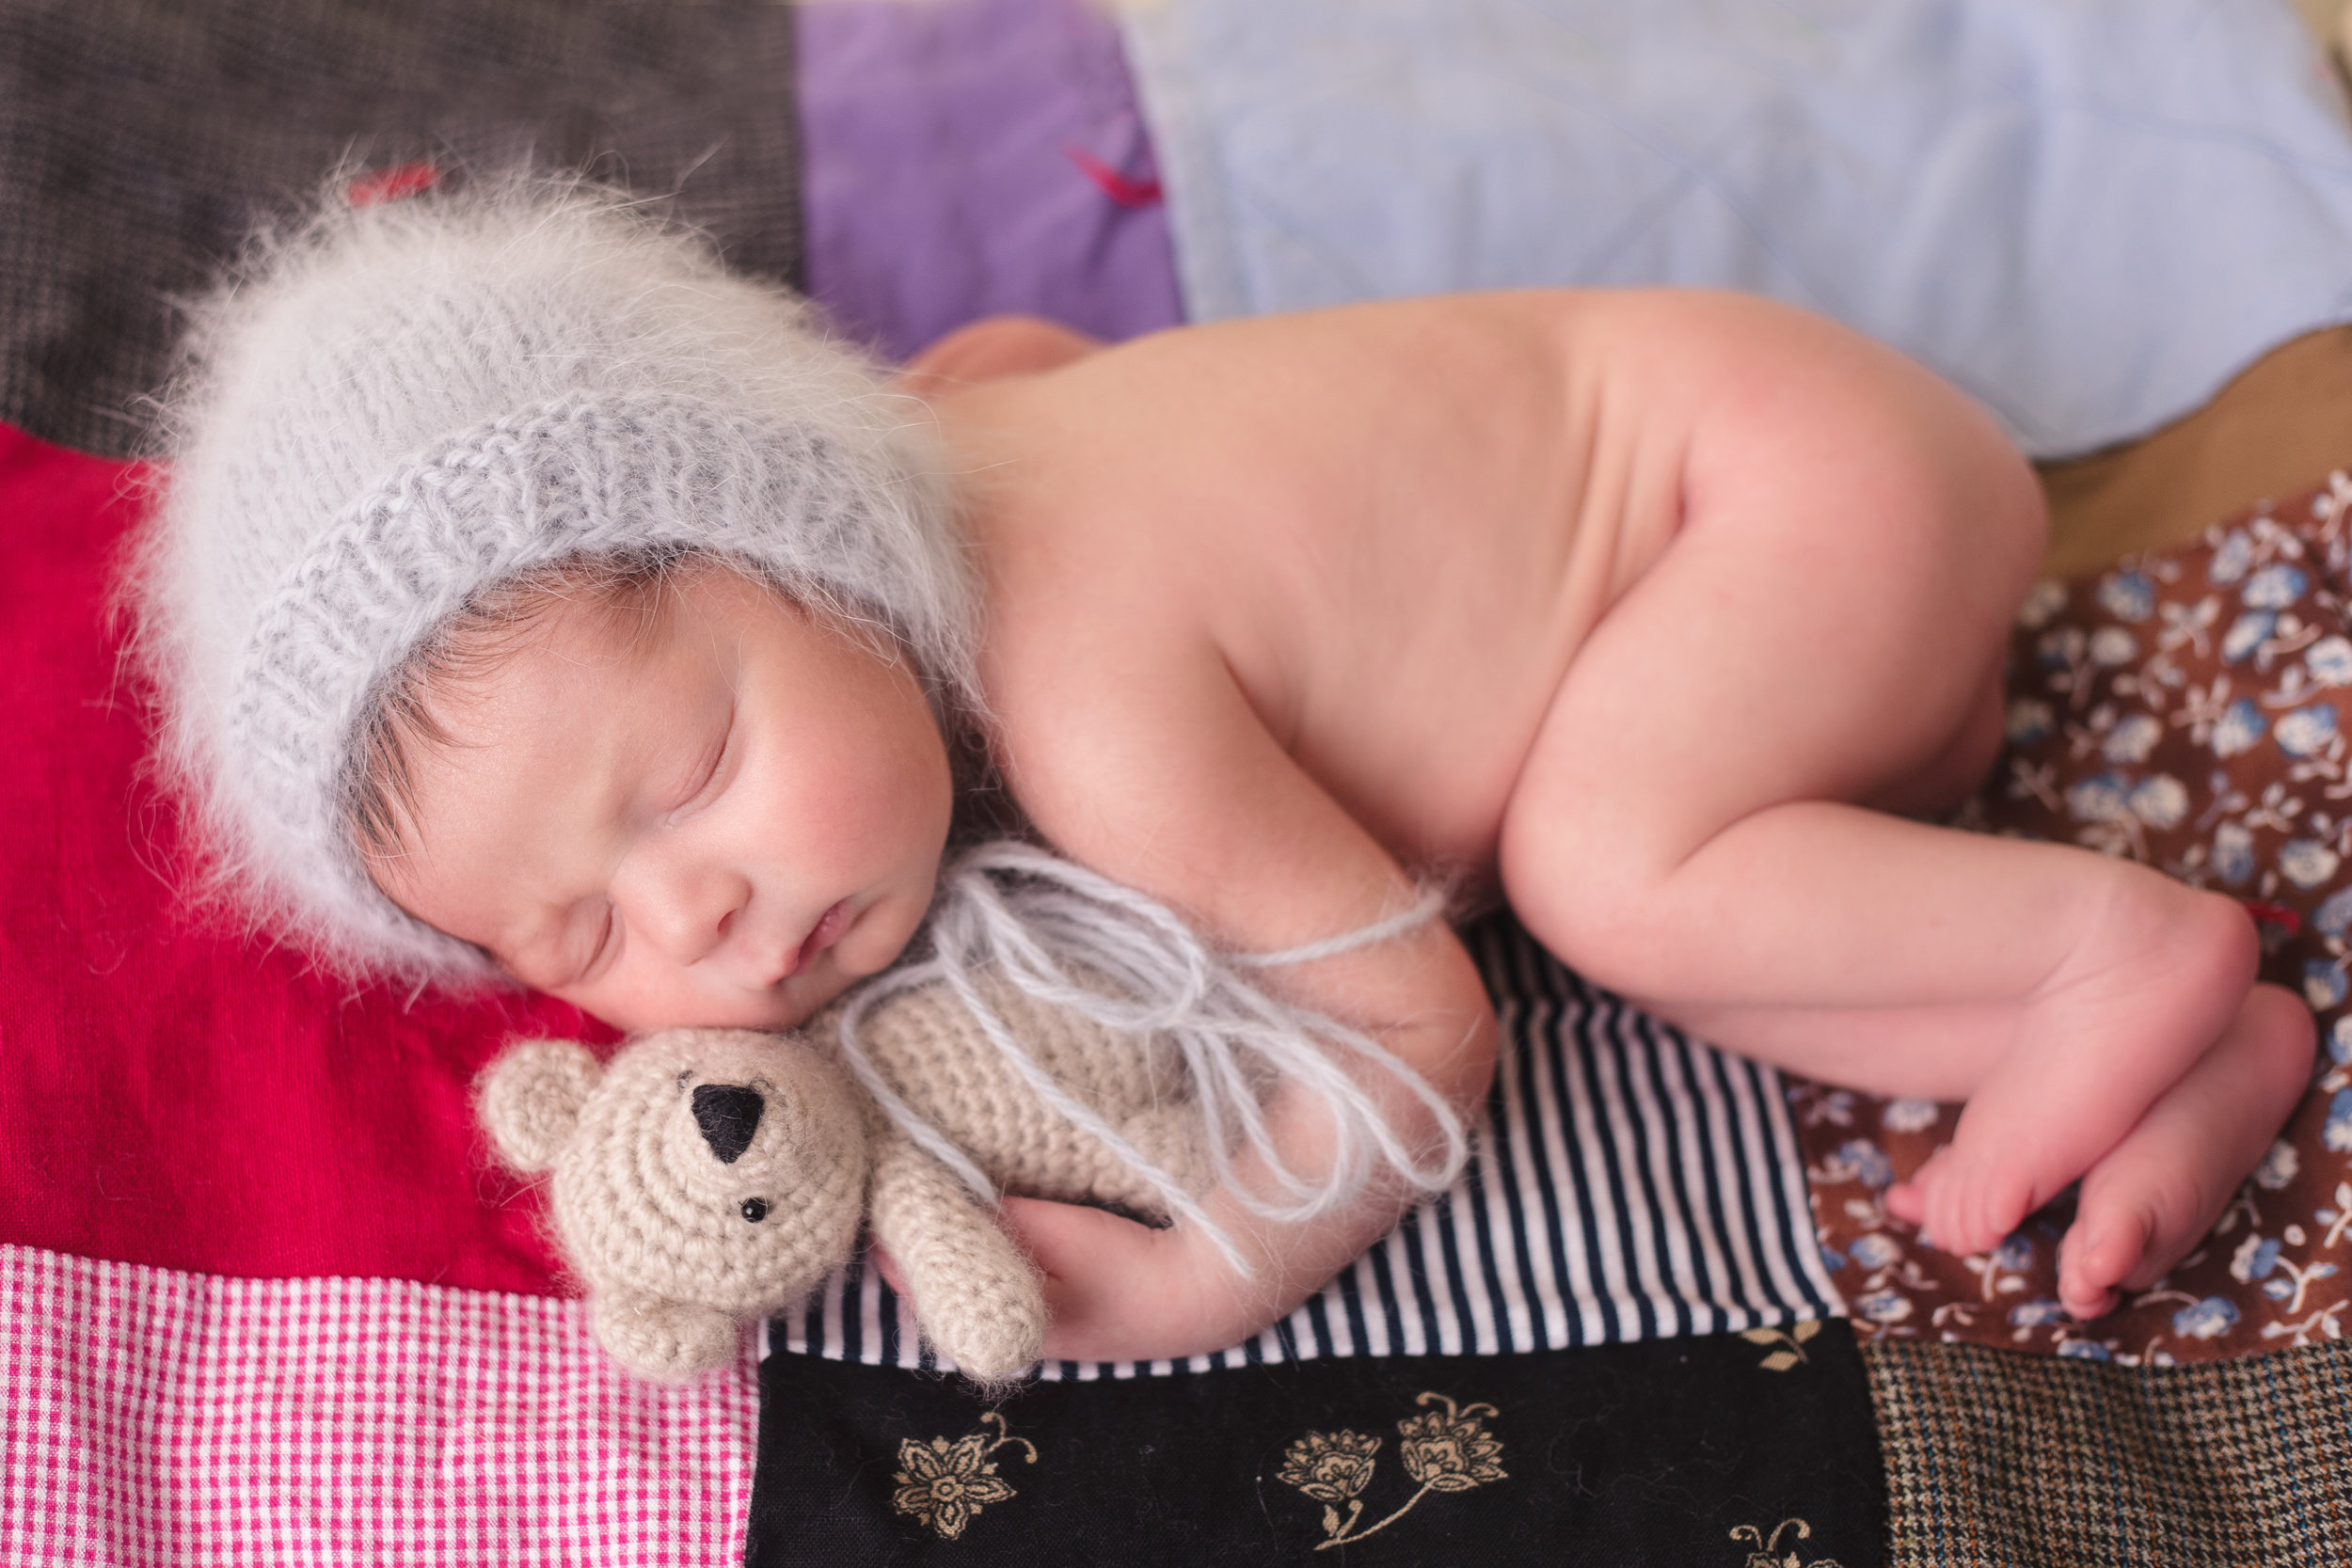 newborn_photography_sandiego_kristenmarieimagery_24.jpg